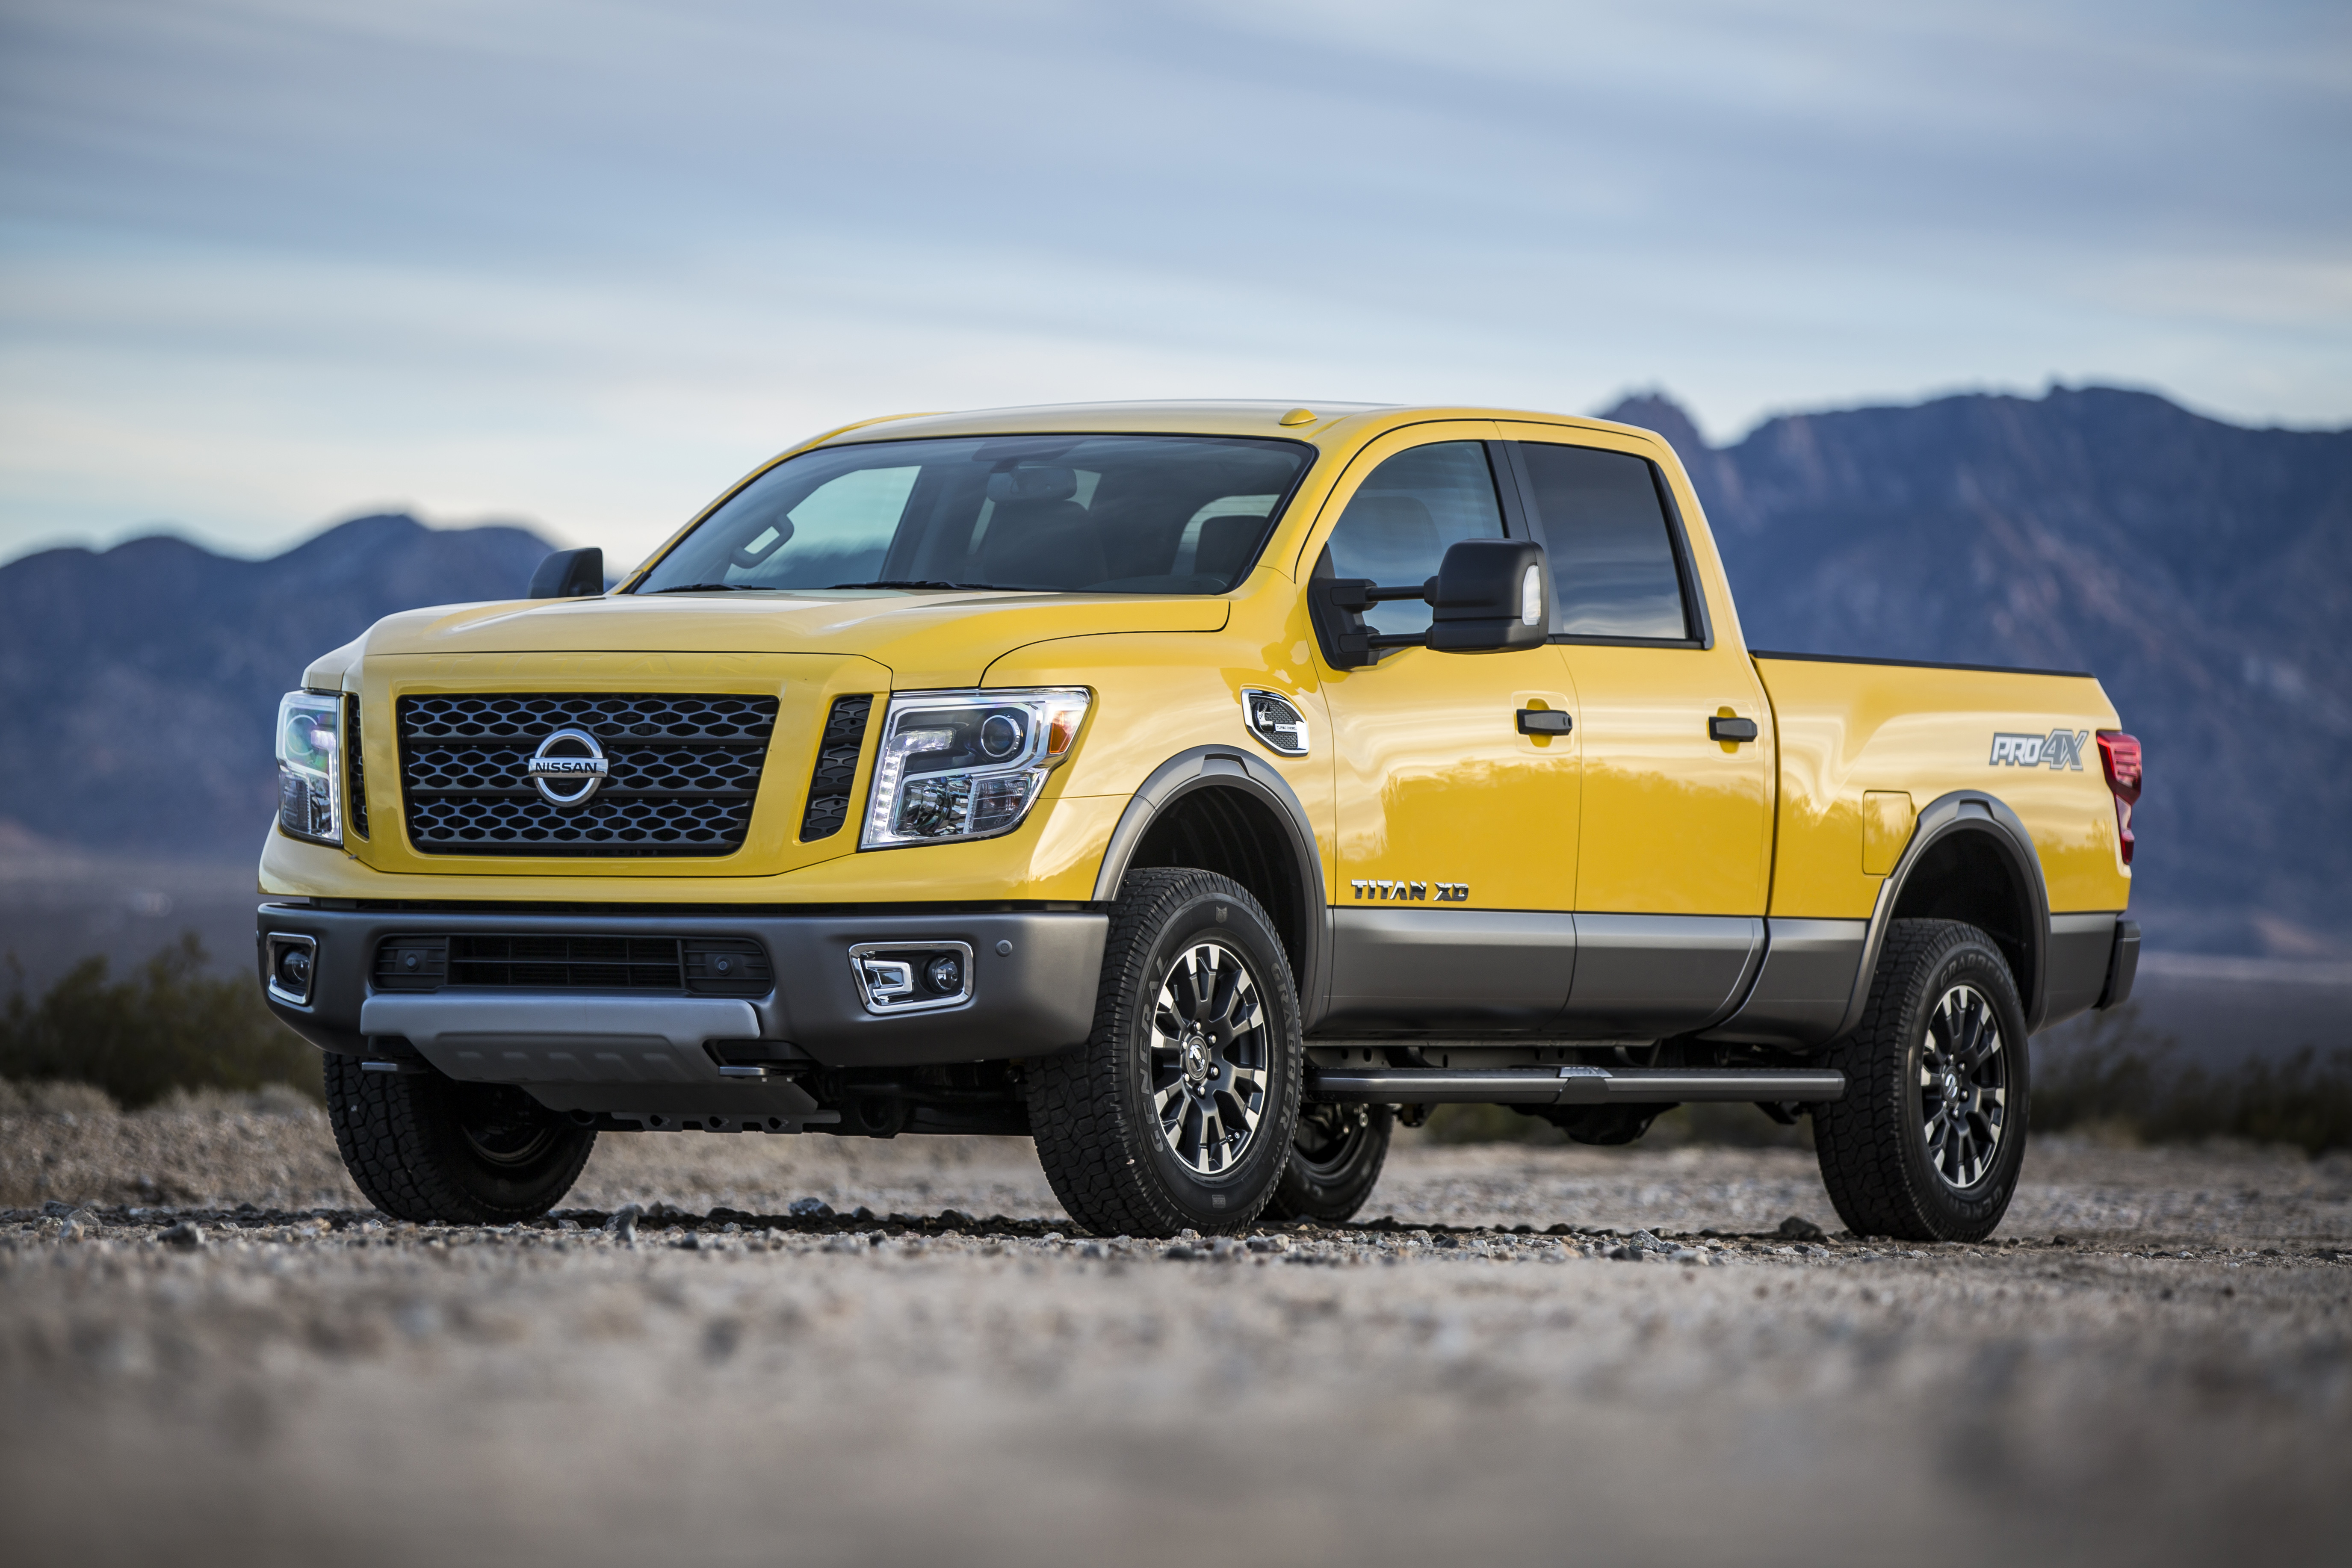 Nissan North America Product Communications Dan Pe 615 725 5264 Usa Or Truck Suv Crossover